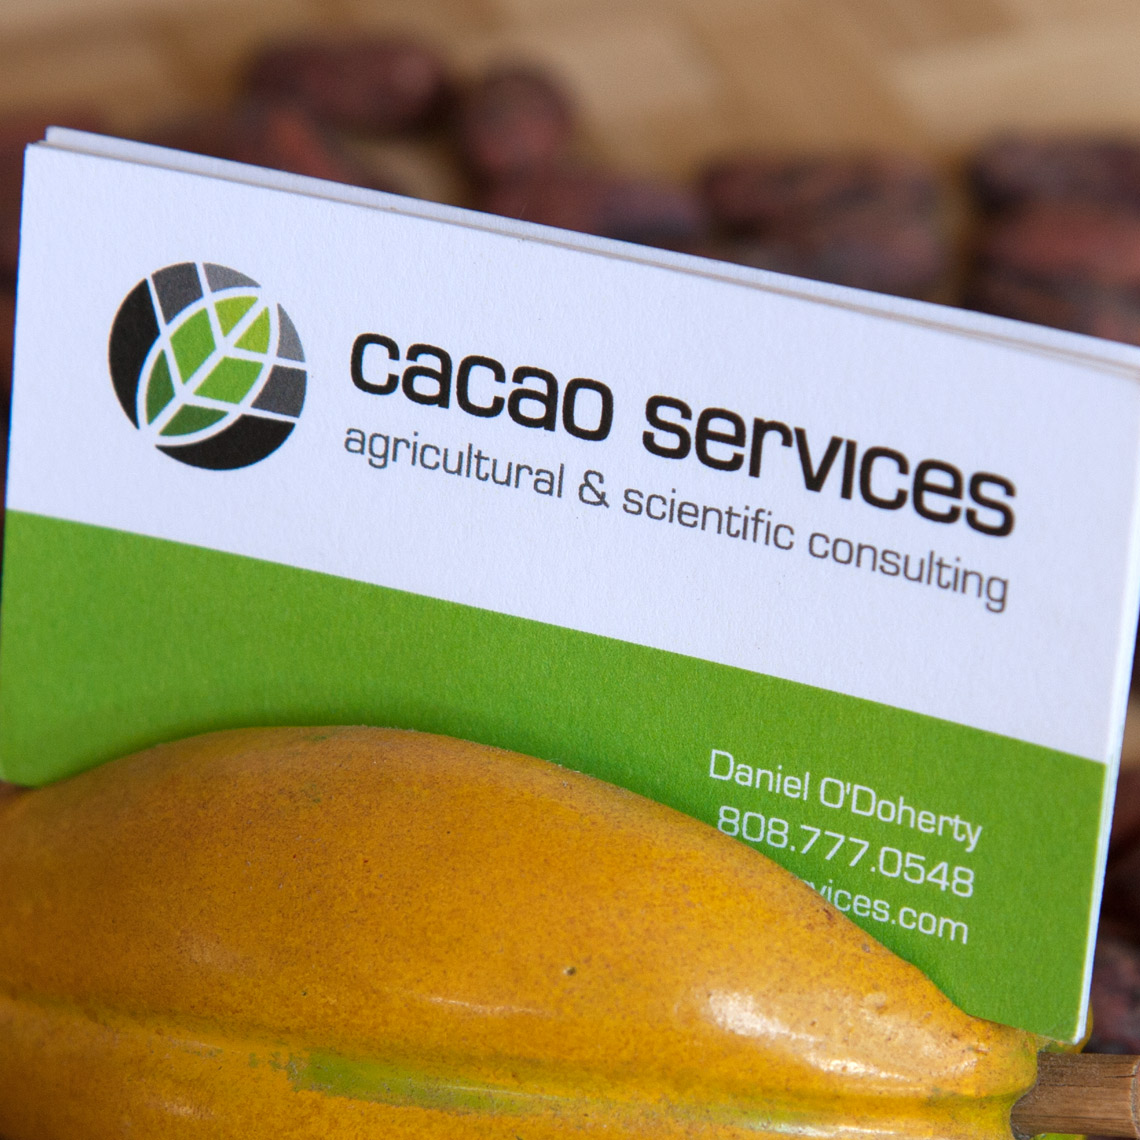 Cacao Services, Inc.